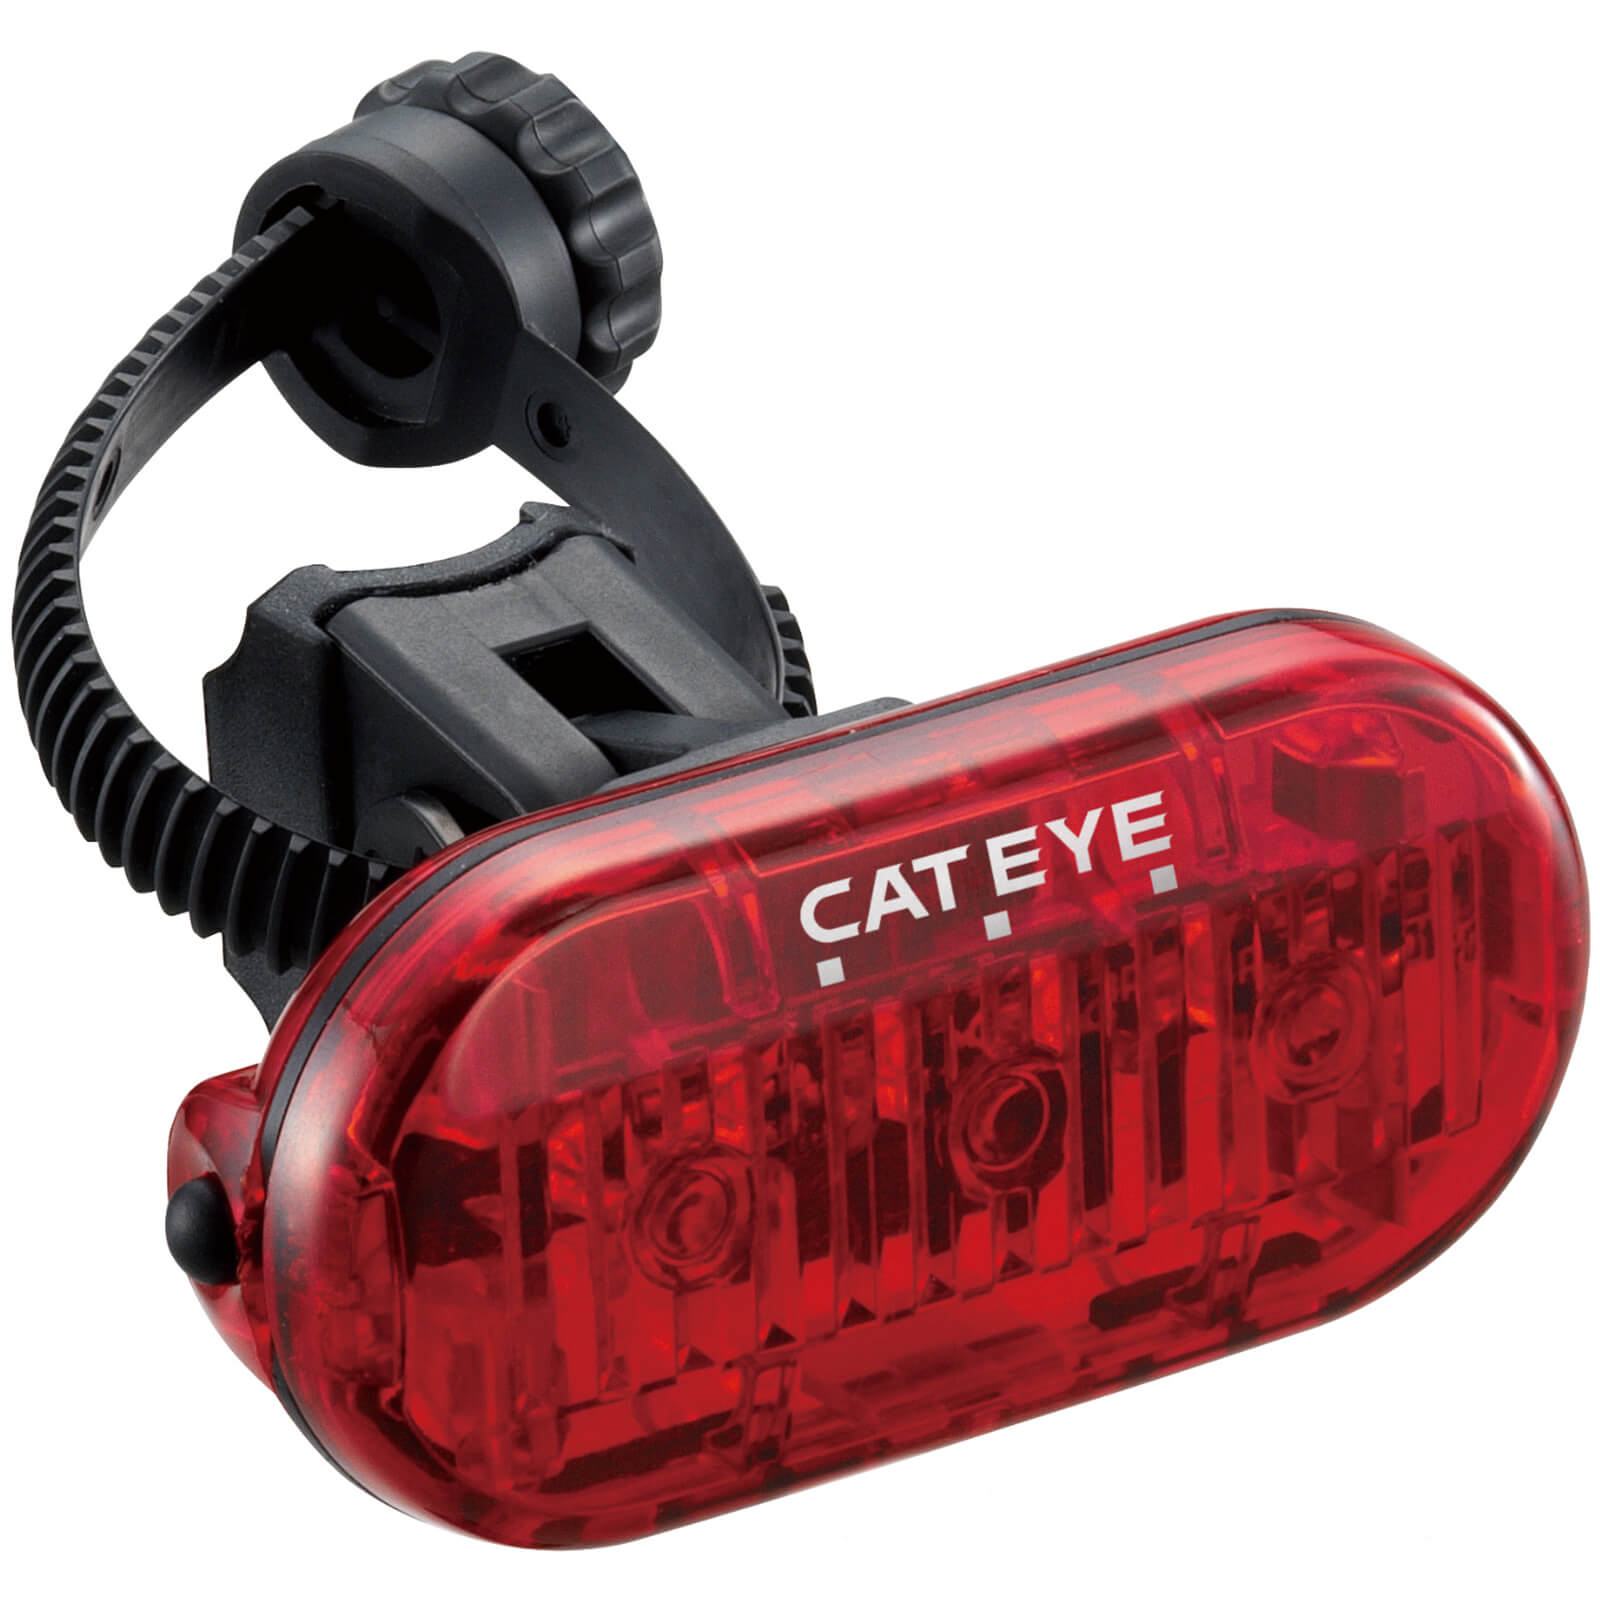 Cateye Omni 3 Rear Light